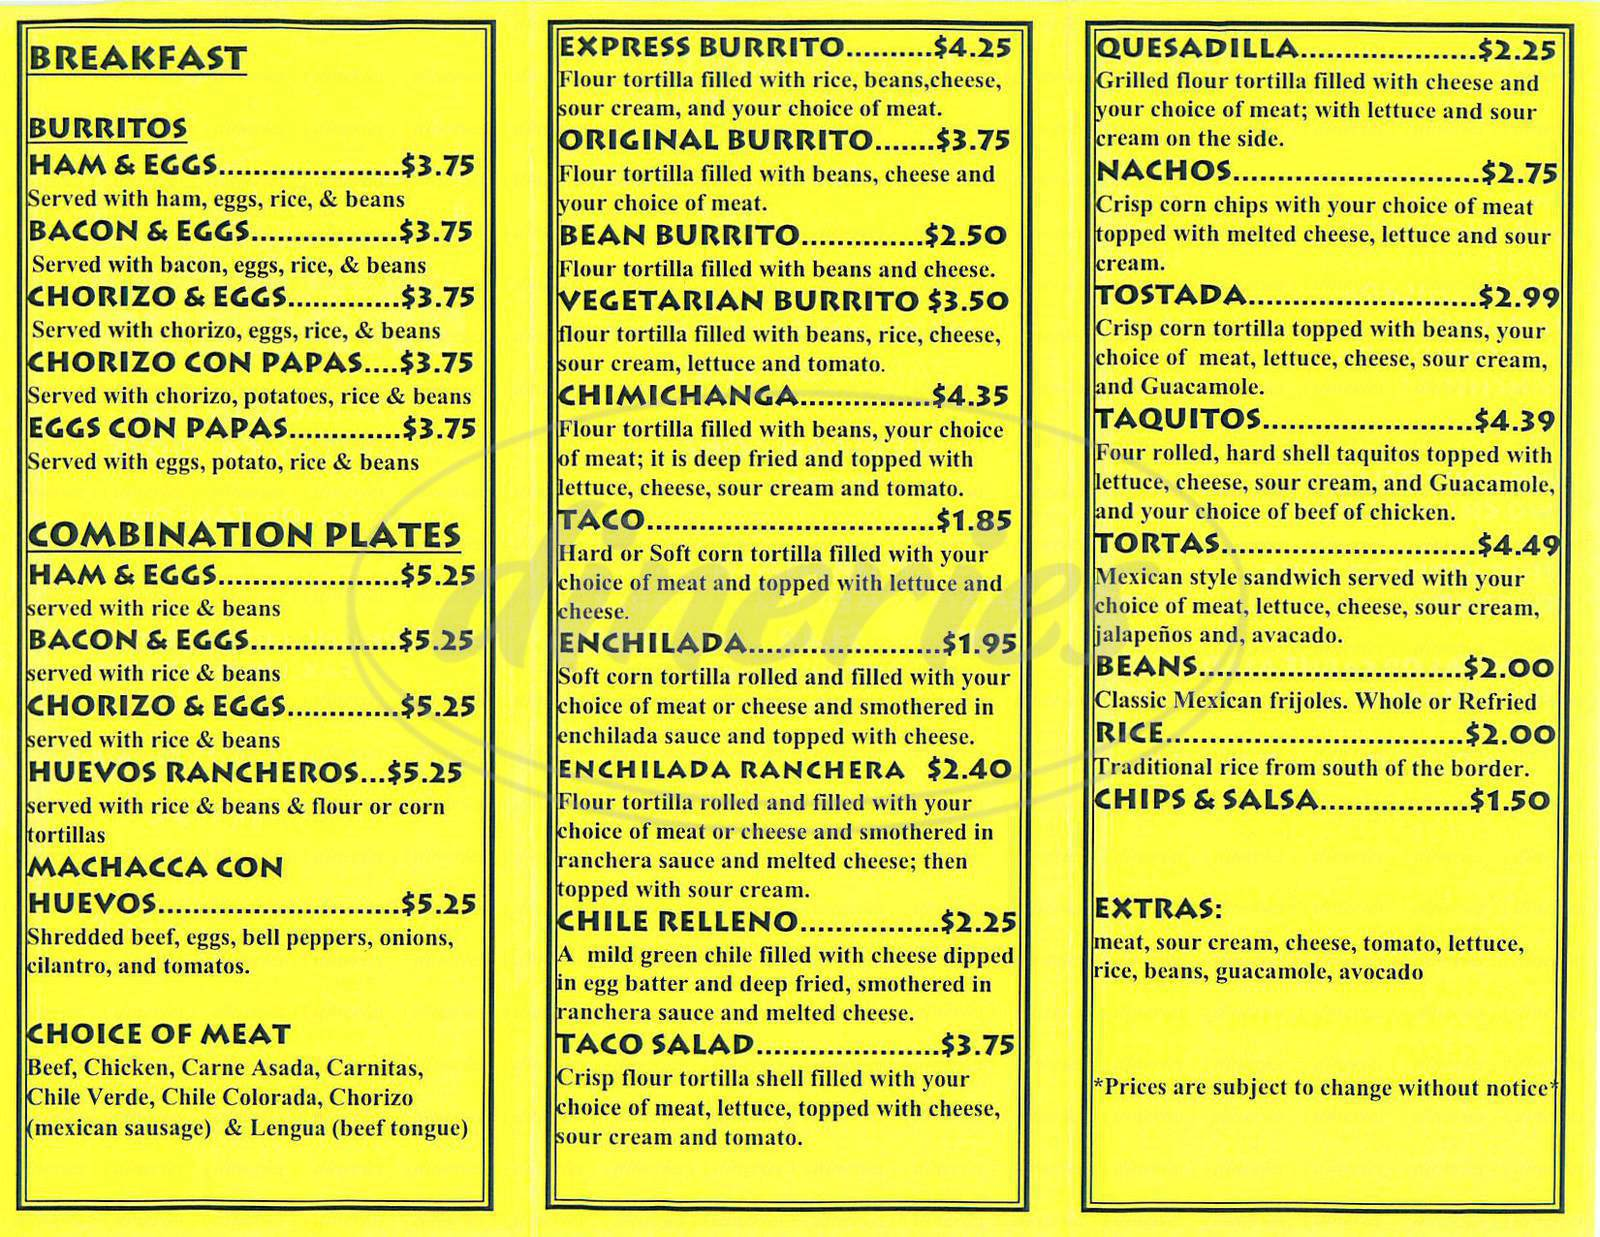 menu for Burrito Express